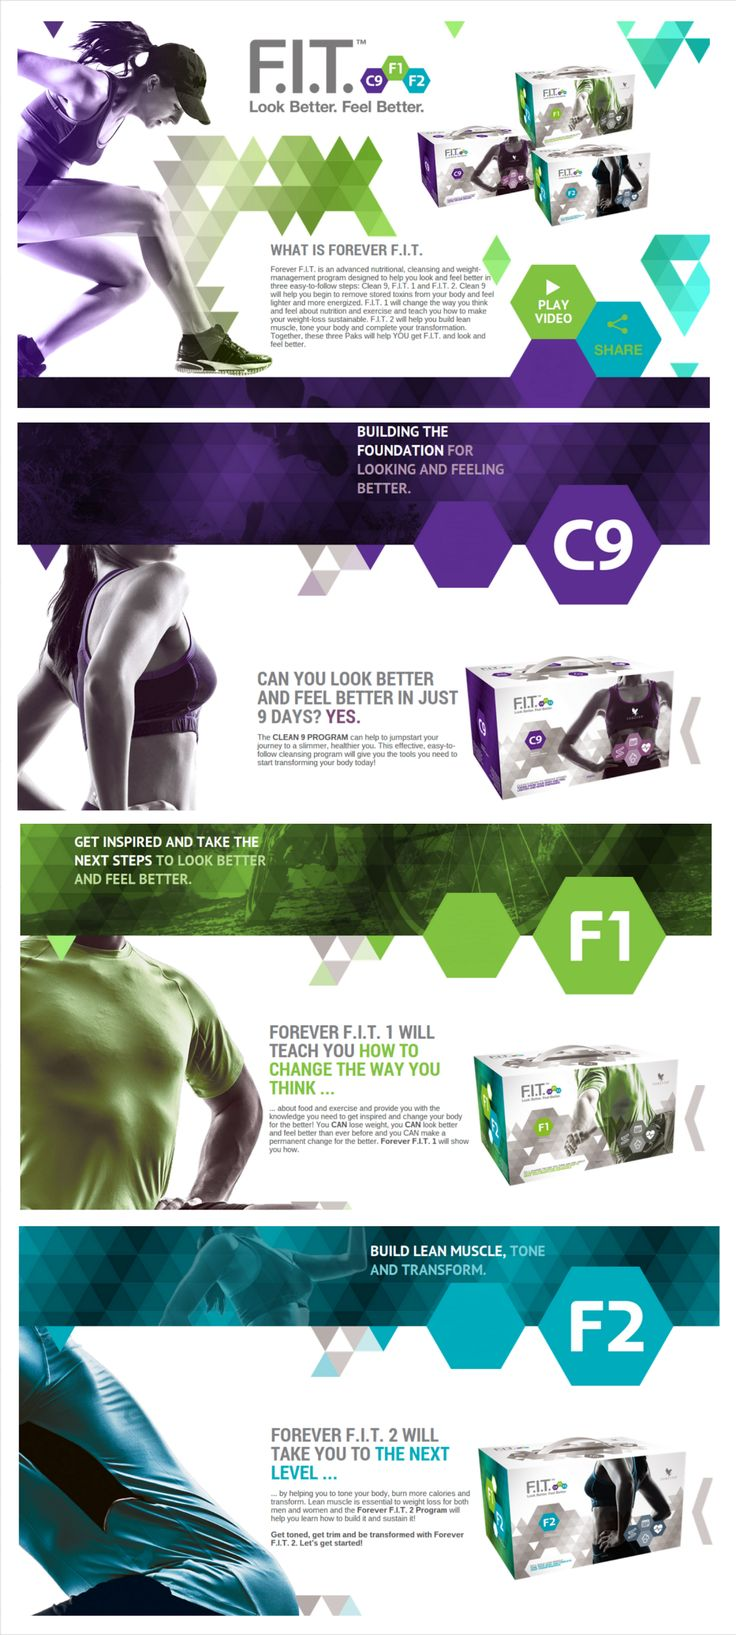 SO excited, the secret is out! For awhile we have been hinting towards a new program that has been giving us incredible results. Forever F.I.T. is an advanced nutritional, cleansing and weight-loss program designed to help you look and feel better in three easy-to-follow steps: Clean 9, F.I.T. 1 and F.I.T. 2.  https://www.facebook.com/groups/gillianajonesforever/